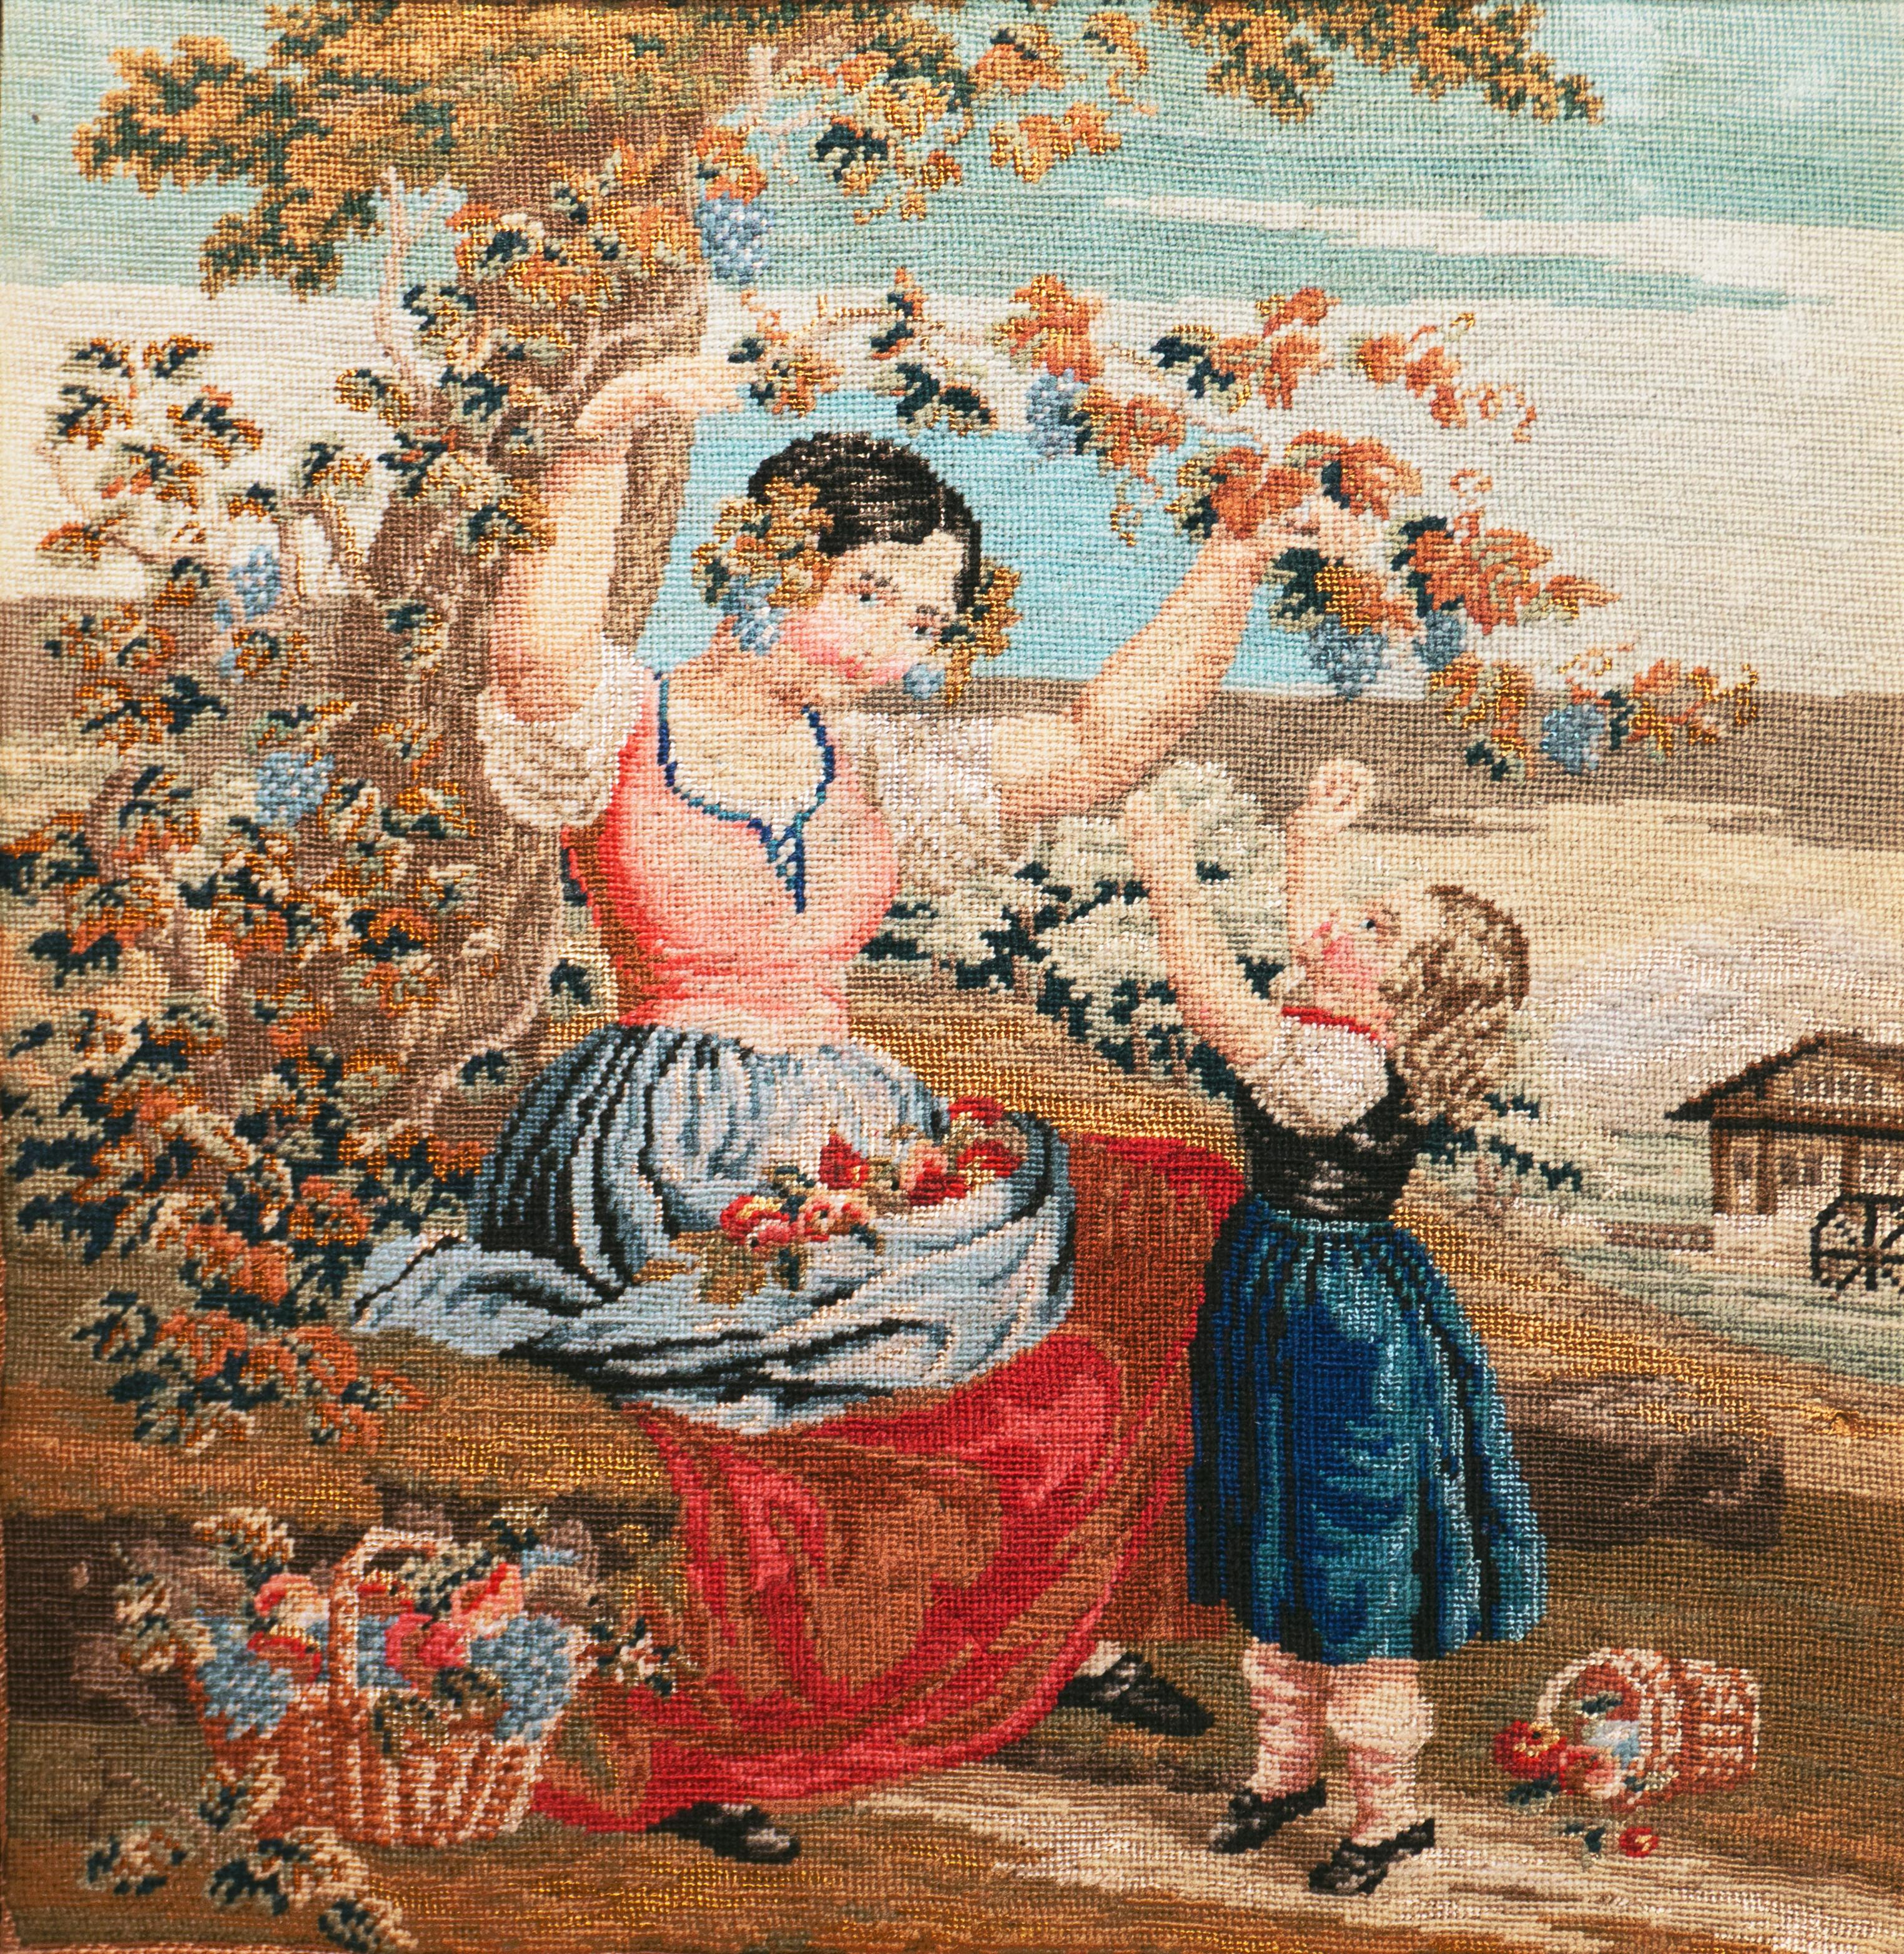 'The Hanging Bough', Figural Petit-point and Needlepoint, Mother and Daughter